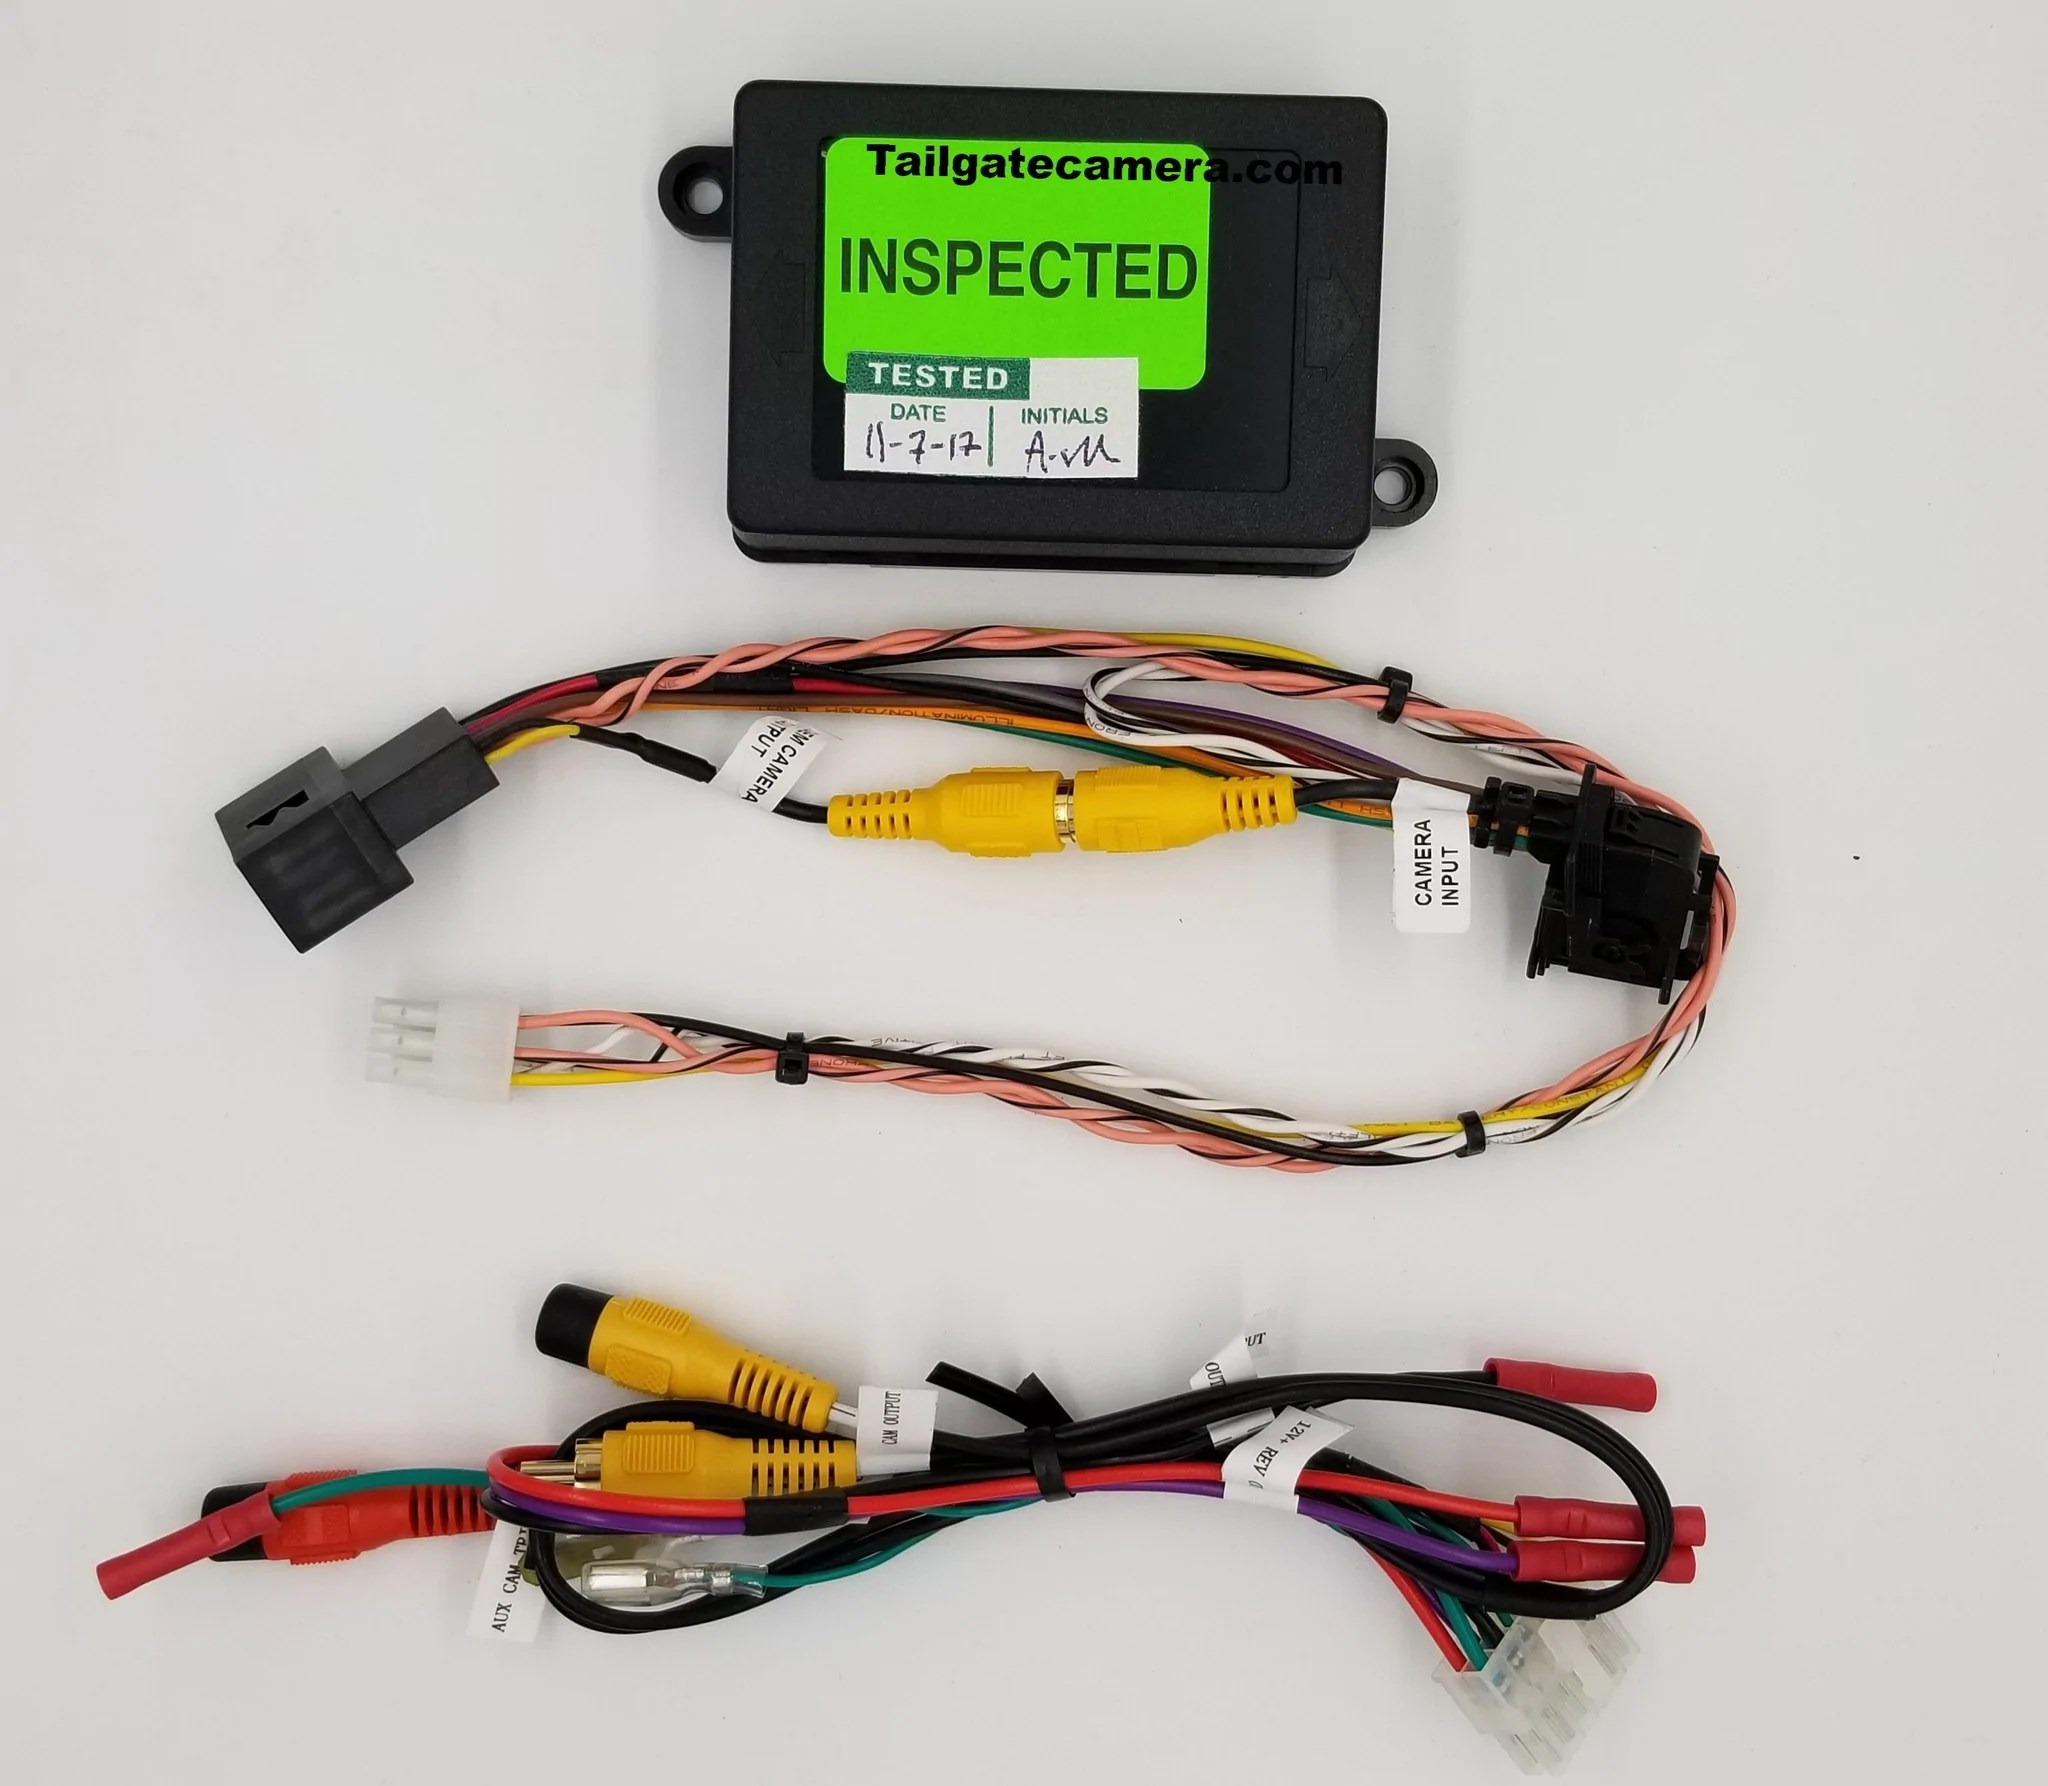 ford backup camera wiring harness diagram data schema ford tailgate camera wiring harness 2013 16 backup [ 2048 x 1786 Pixel ]